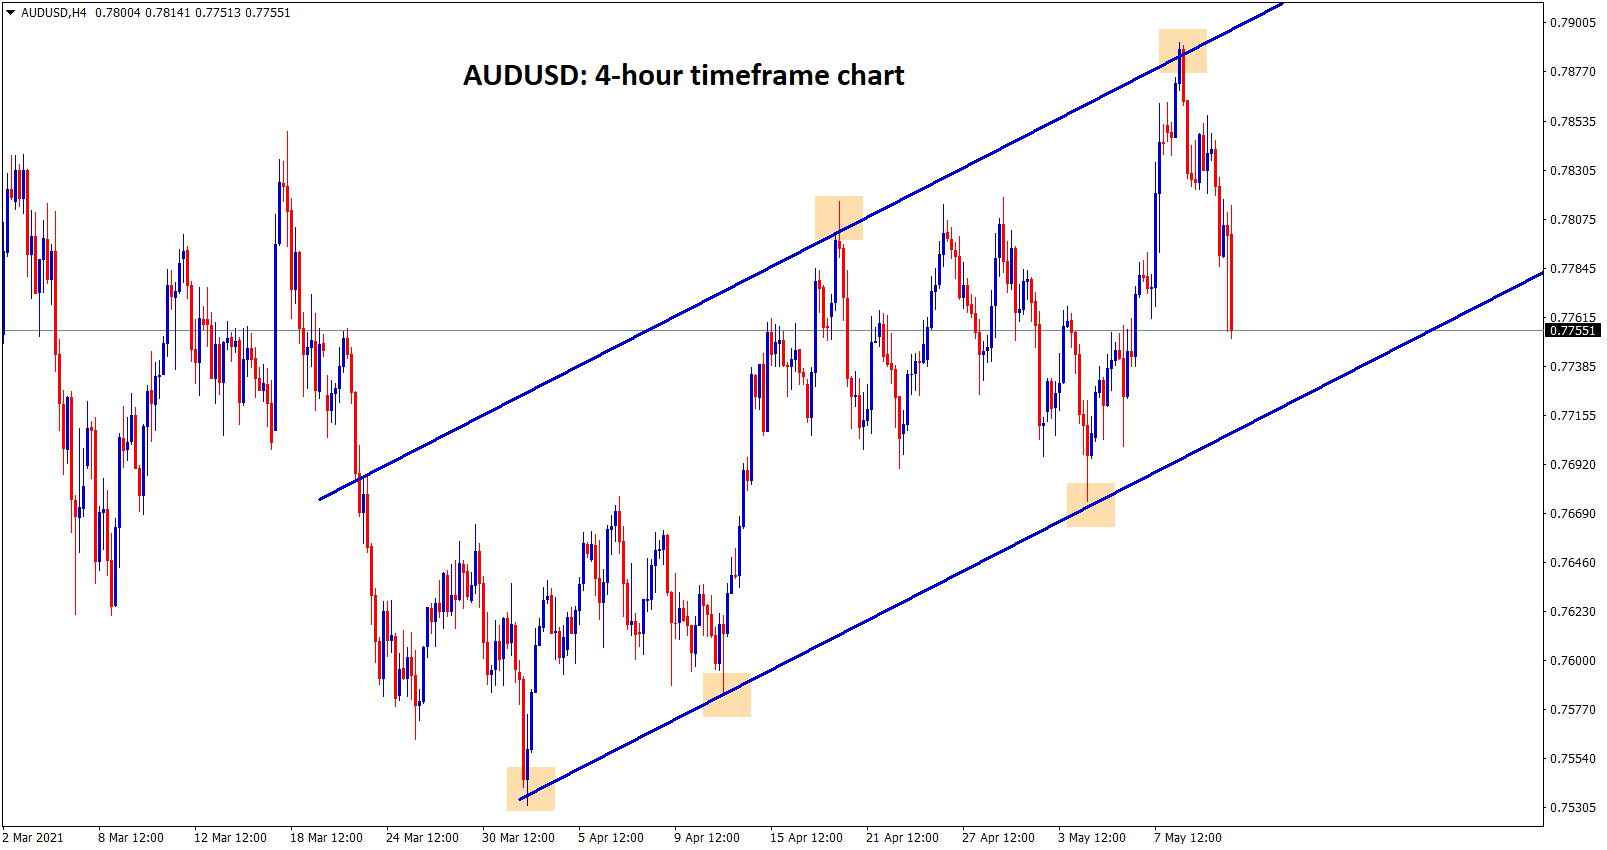 AUDUSD is moving in an ascending channel by forming higher highs and higher lows in the 4 hour timeframe chart.